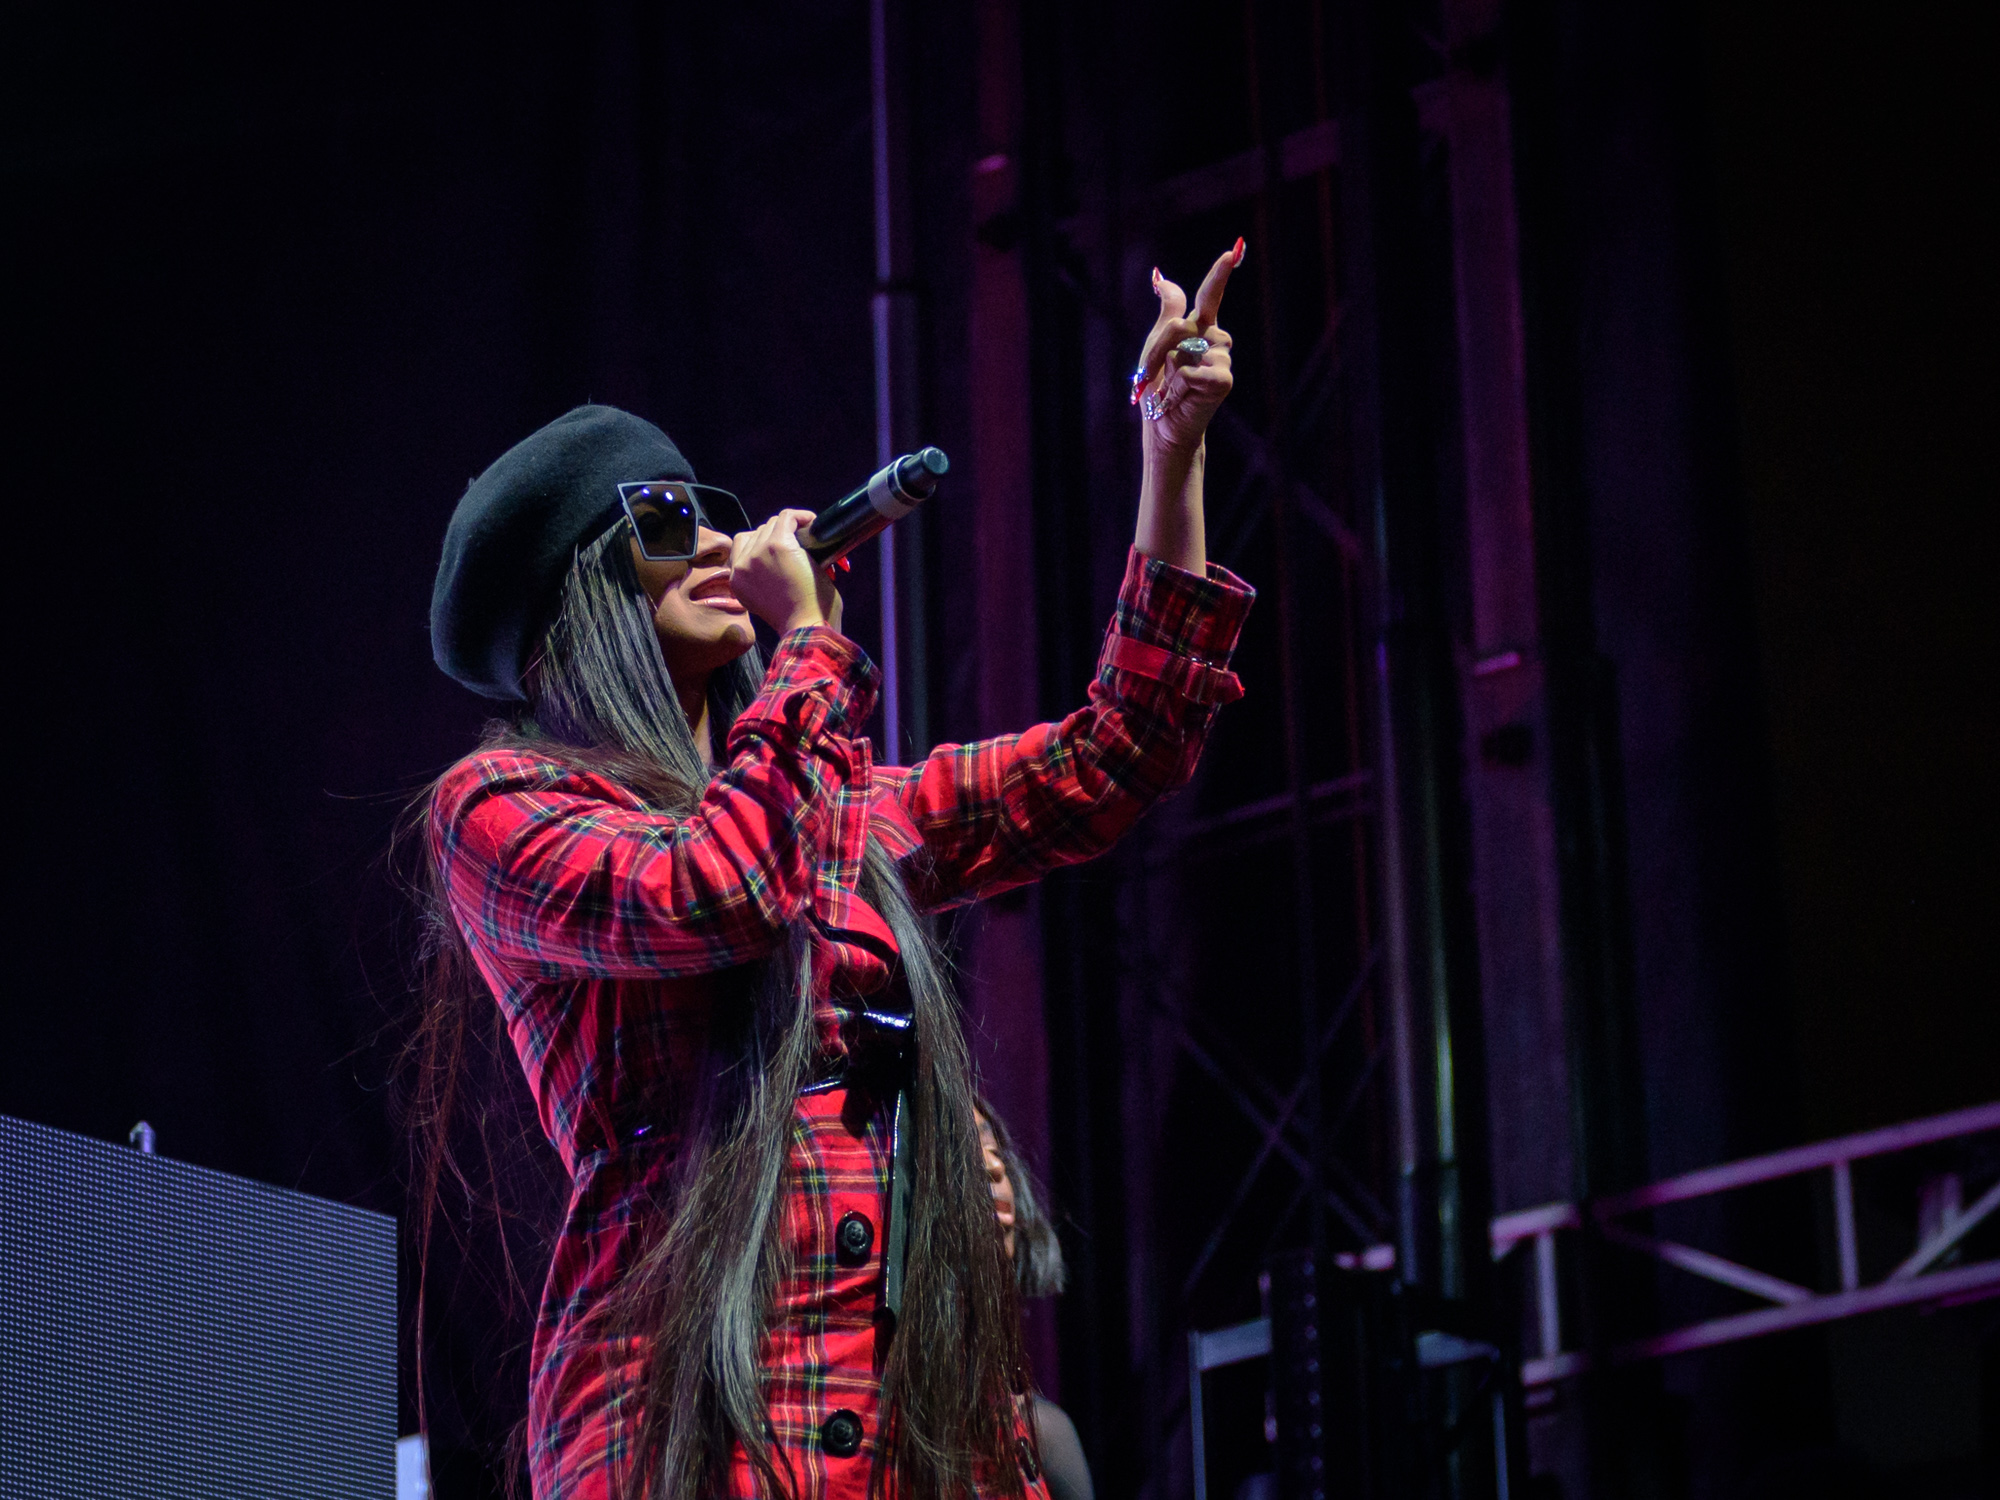 Cardi B performs during Day for Night Music and Art Festival, Houston, TX. December 16, 2017